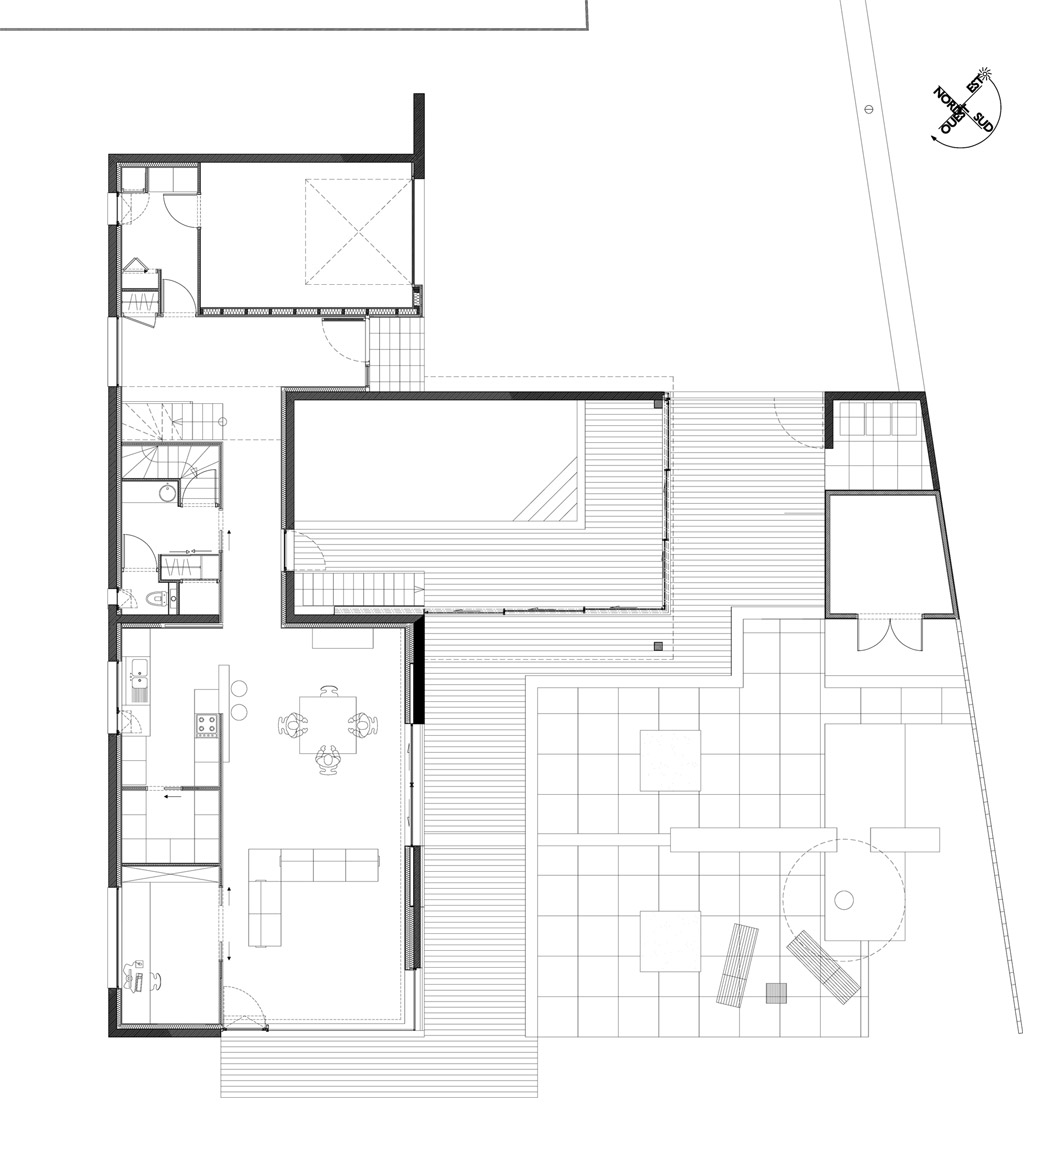 Maison contemporaine avec piscine int rieure apla architectes for Plan interieur maison en u